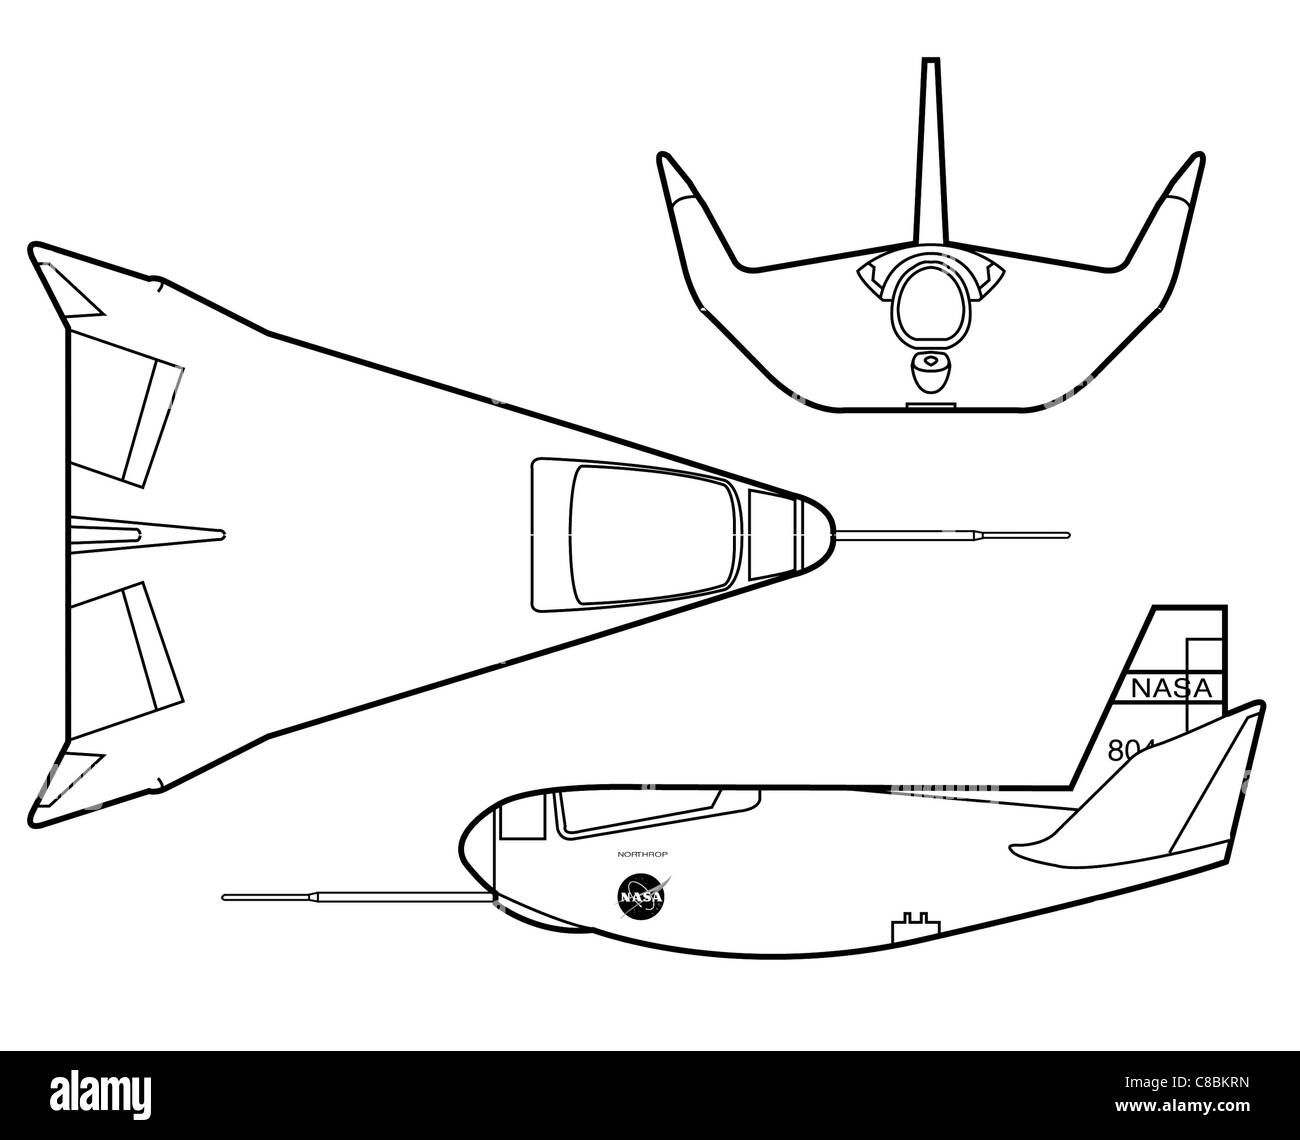 hight resolution of 3 view aircraft line art drawing the hl 10 was one of five aircraft built in the lifting body research program